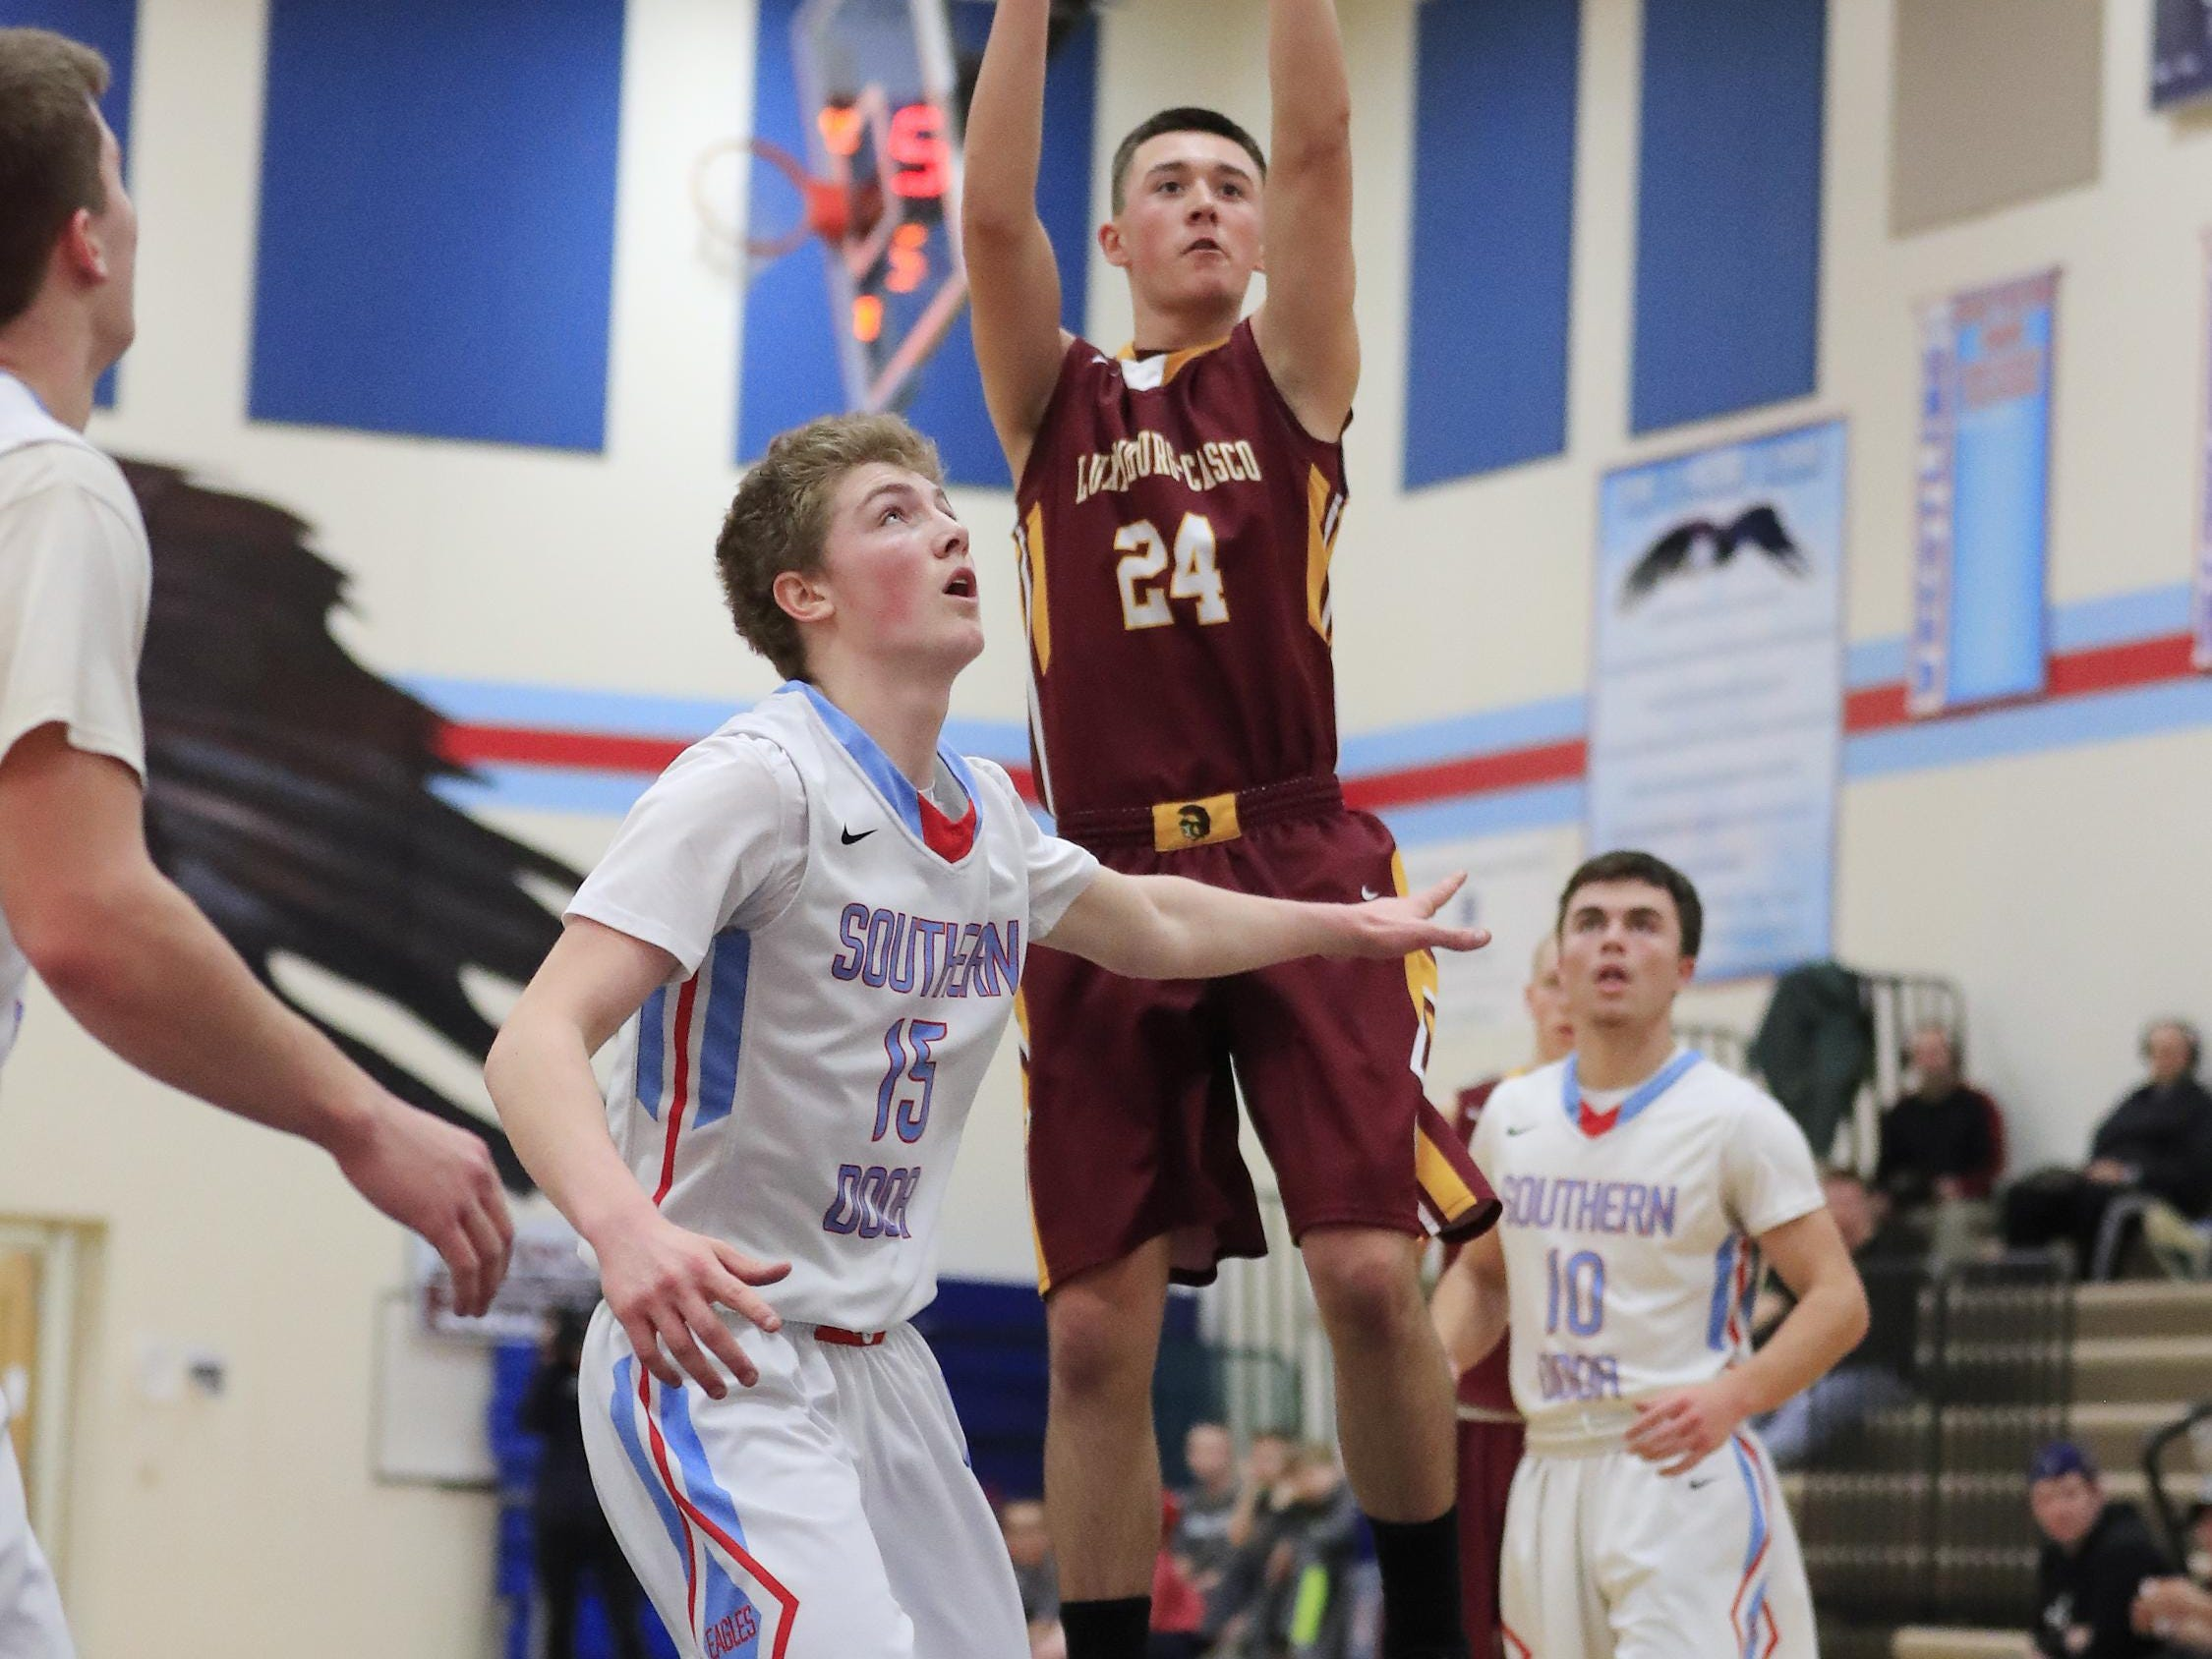 Luxemburg-Casco's Bryce Te Kulve (24) shoots over Southern Door's Kyle Daoust (15) in a boys basketball game Monday.